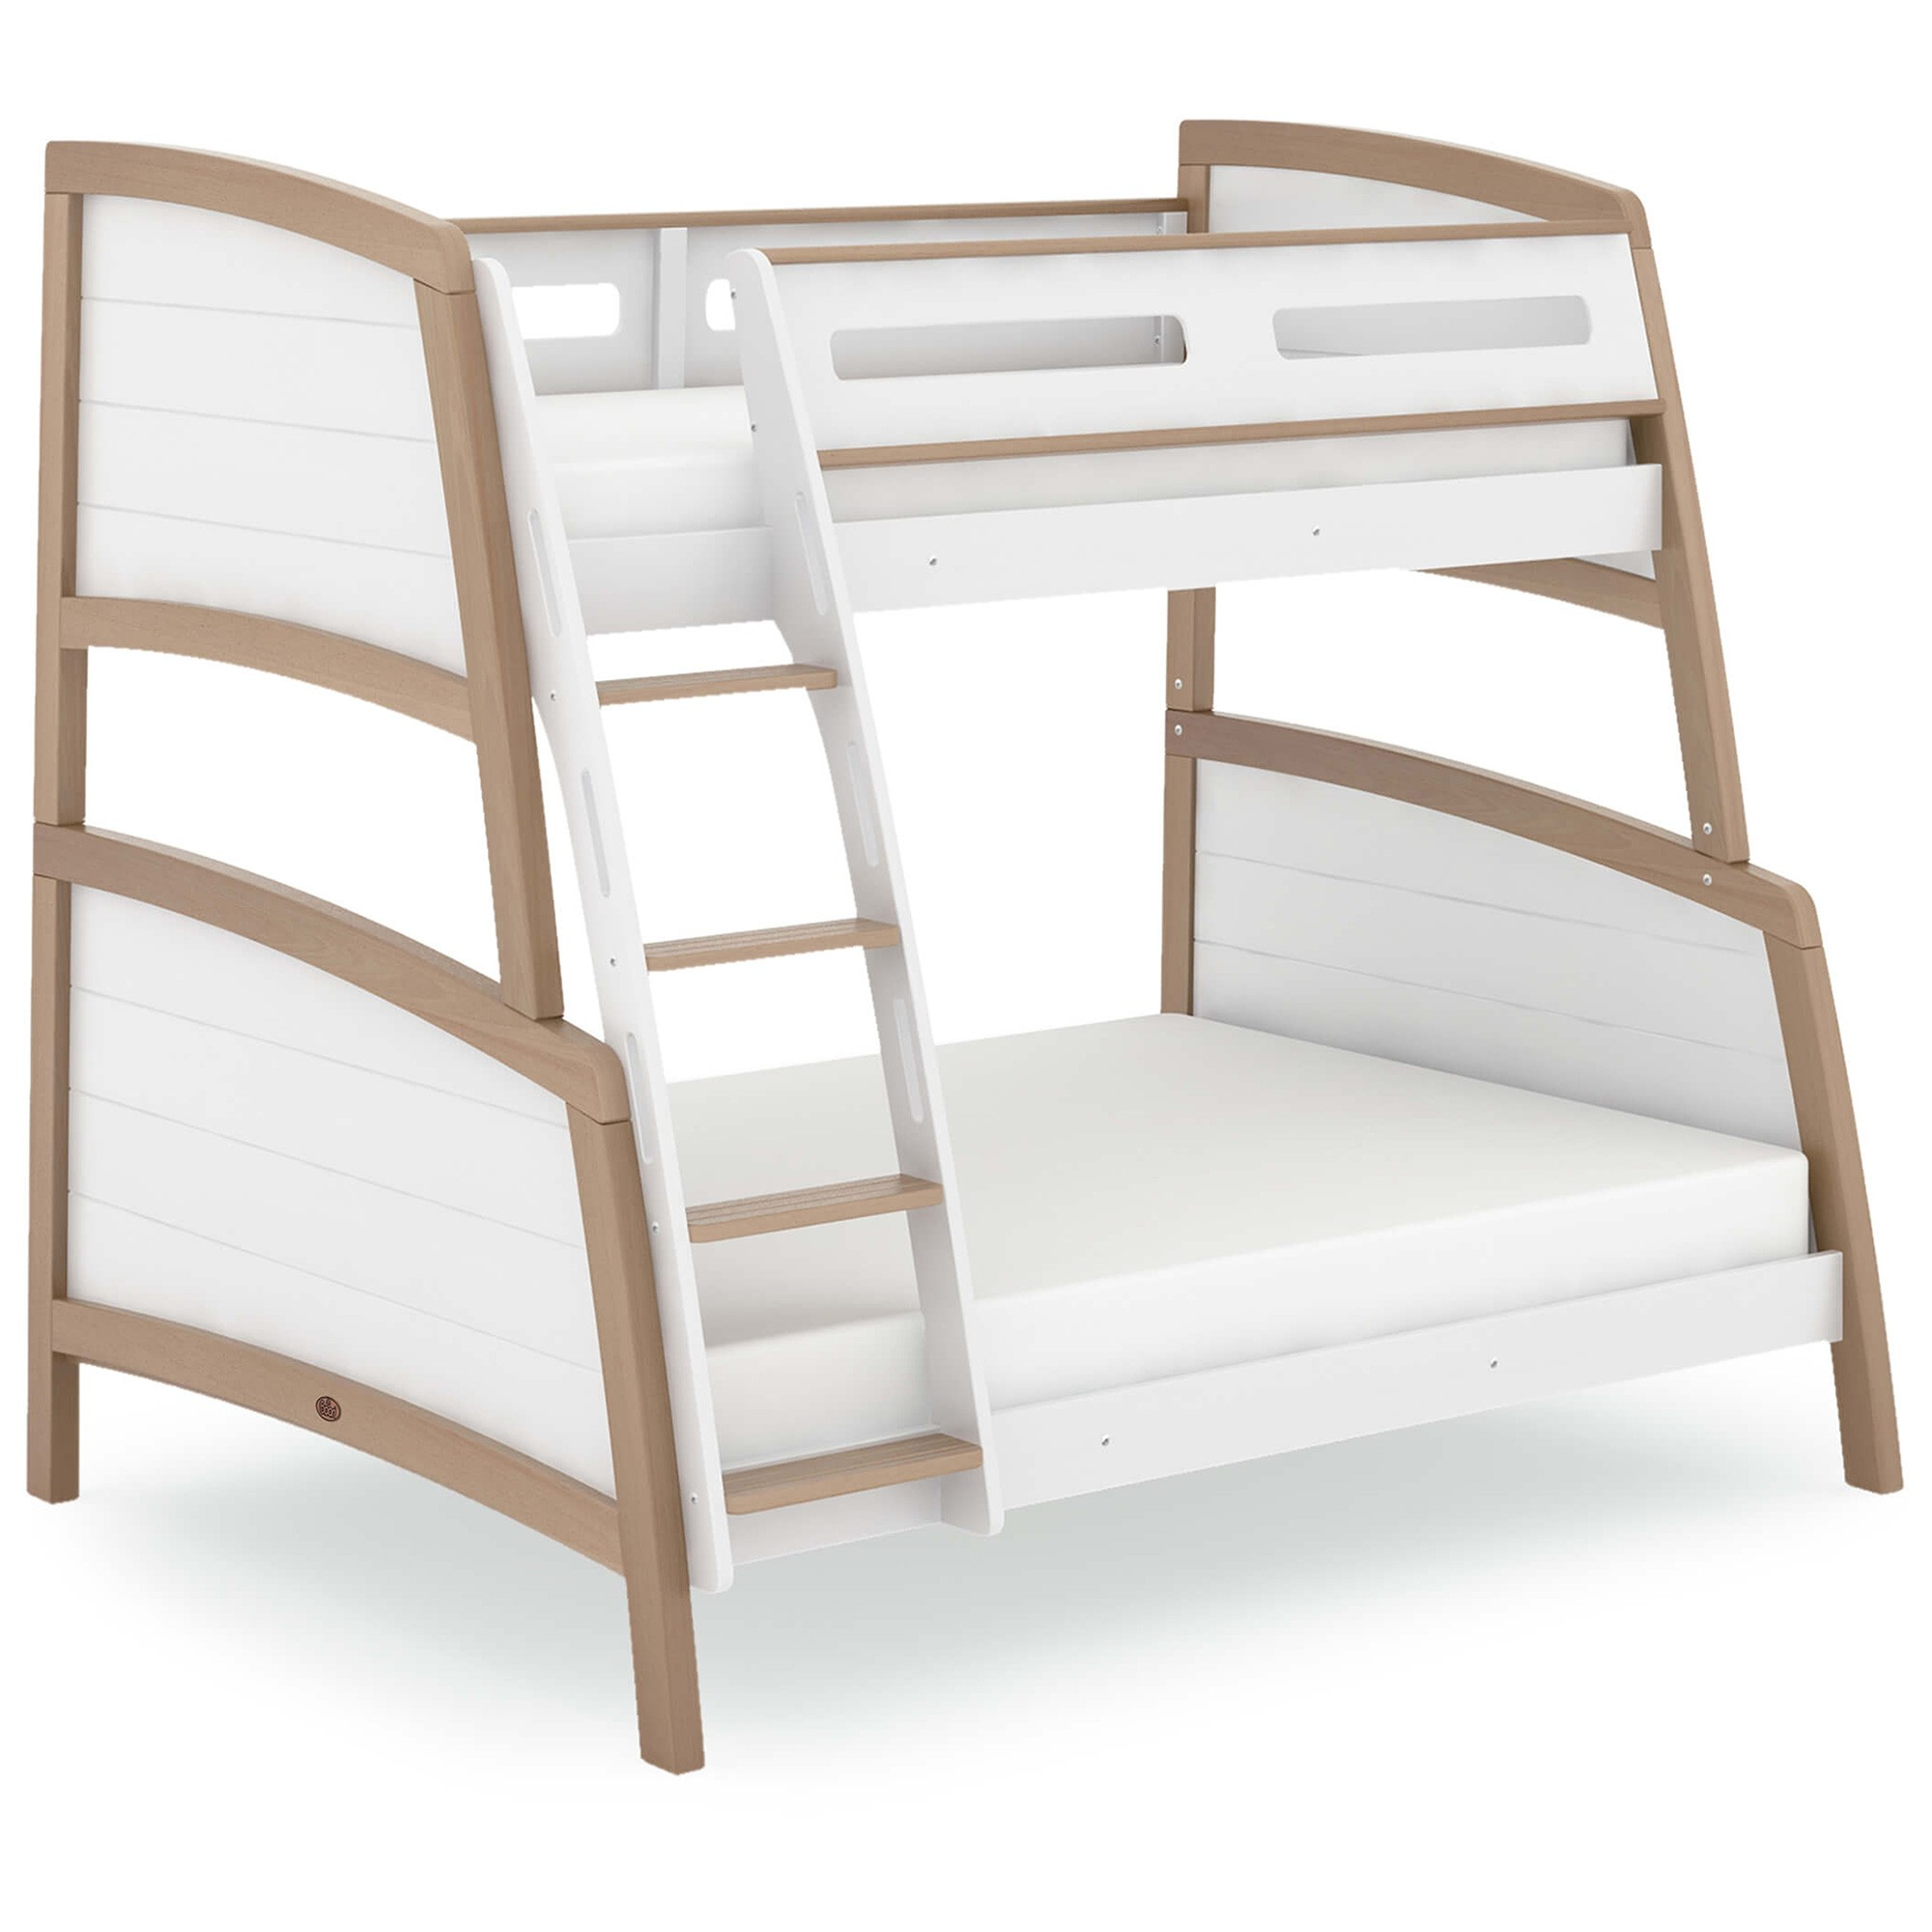 Boori Ascende Maxi Wooden Bunk Bed, Trio